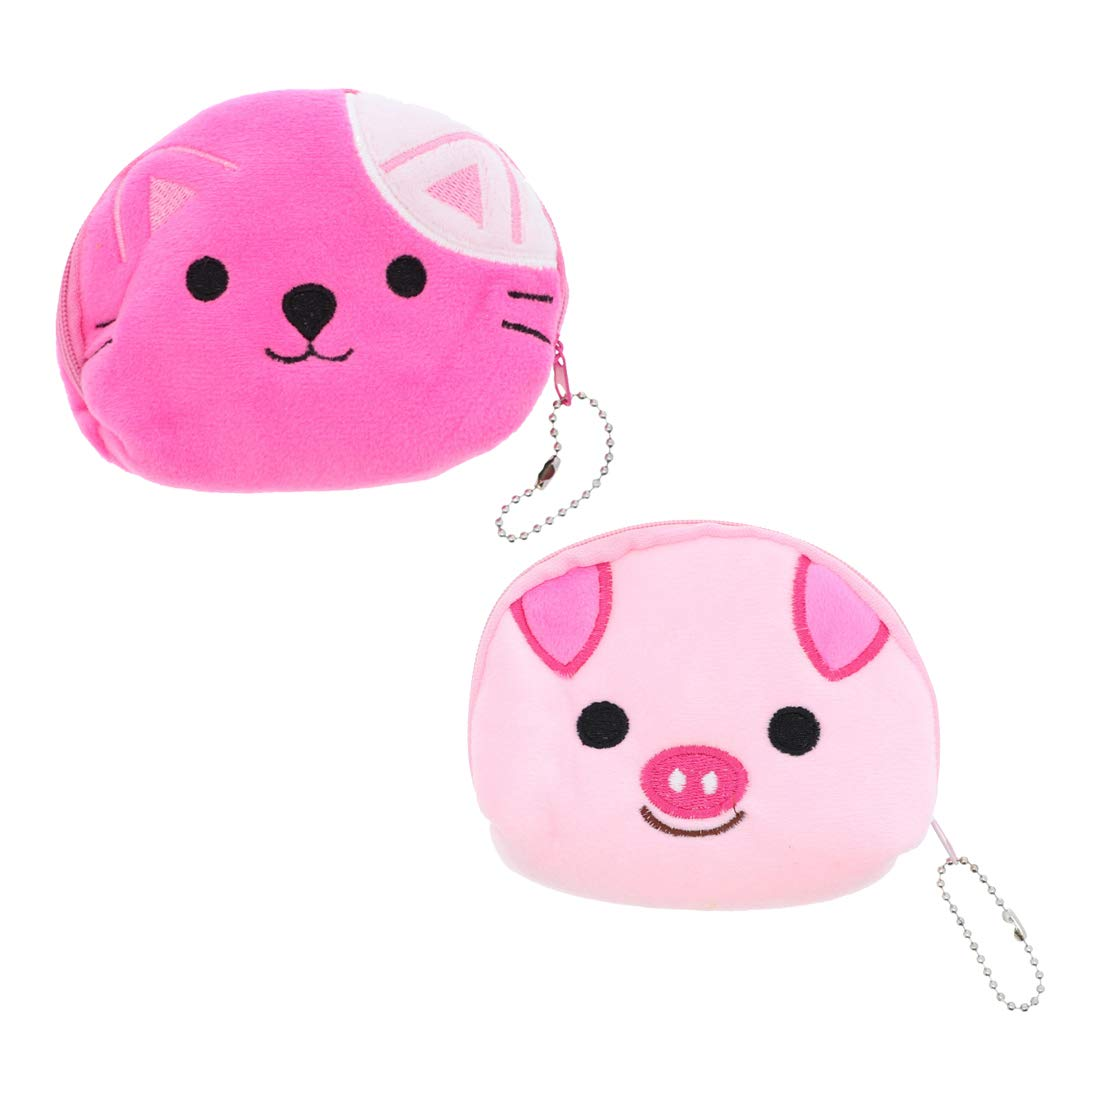 Large Animal Face Coin Purse Plush Wallet - Set of 2 - Pinks